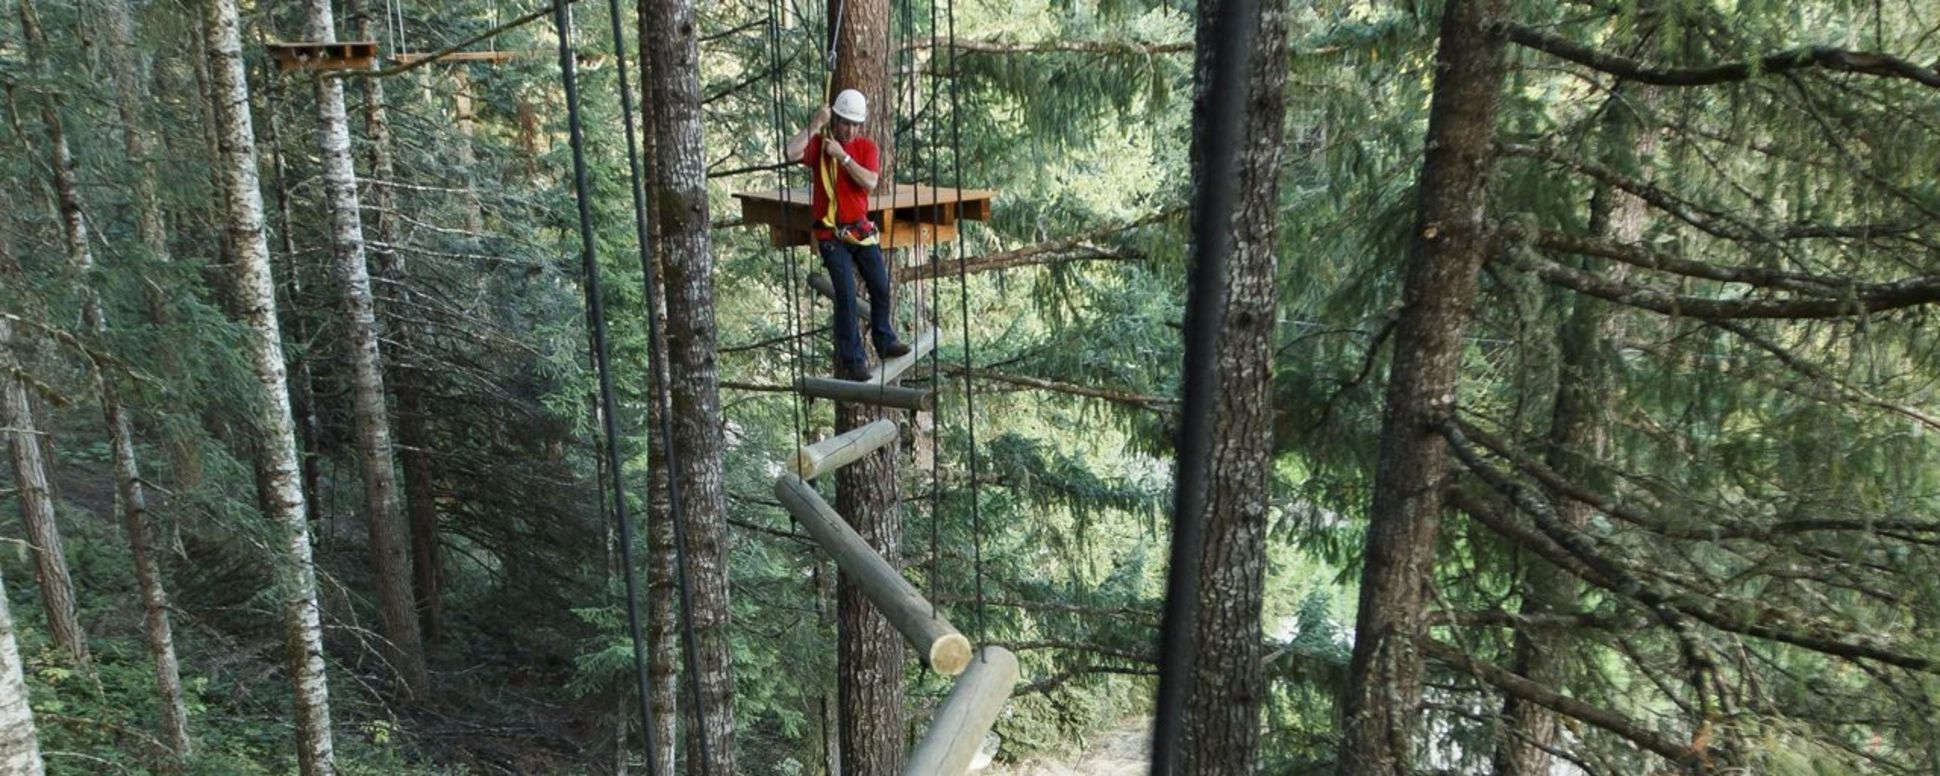 A helmeted person navigates a path of logs suspended from cables high above the forest floor at Tree to Tree Adventure Park.